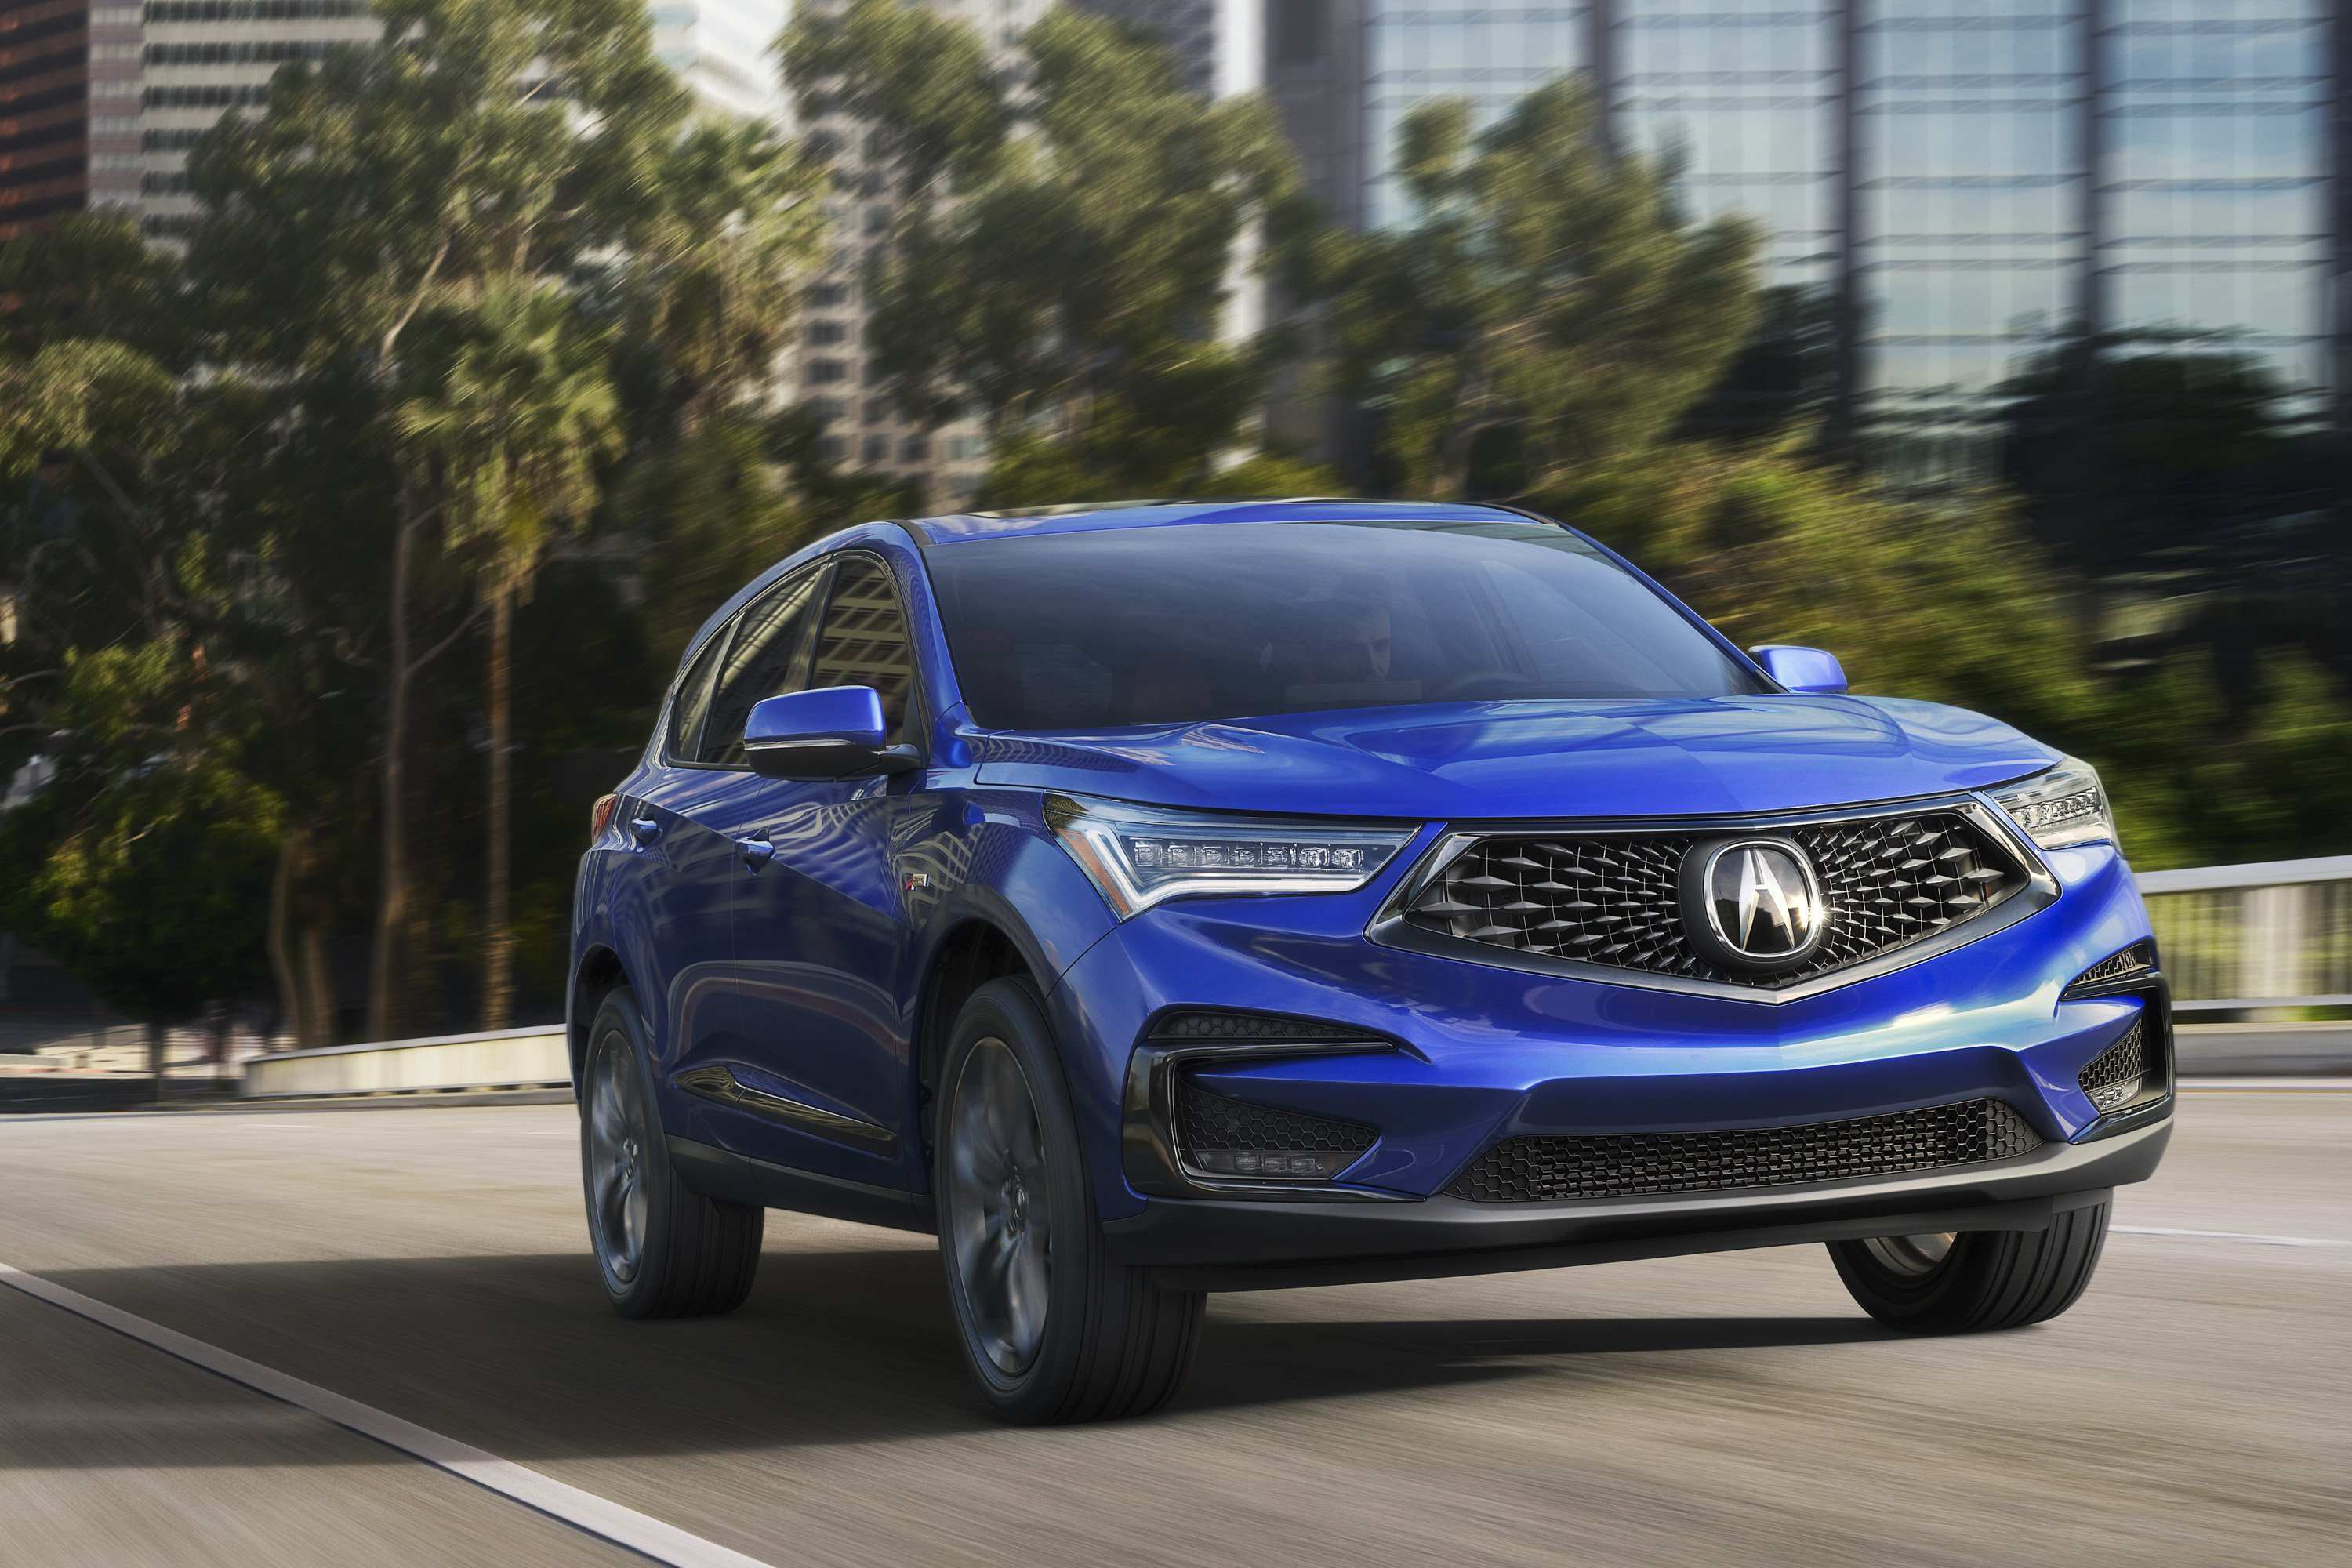 74 Best Review The Acura Rdx 2019 Release Date Usa Spy Shoot Wallpaper by The Acura Rdx 2019 Release Date Usa Spy Shoot